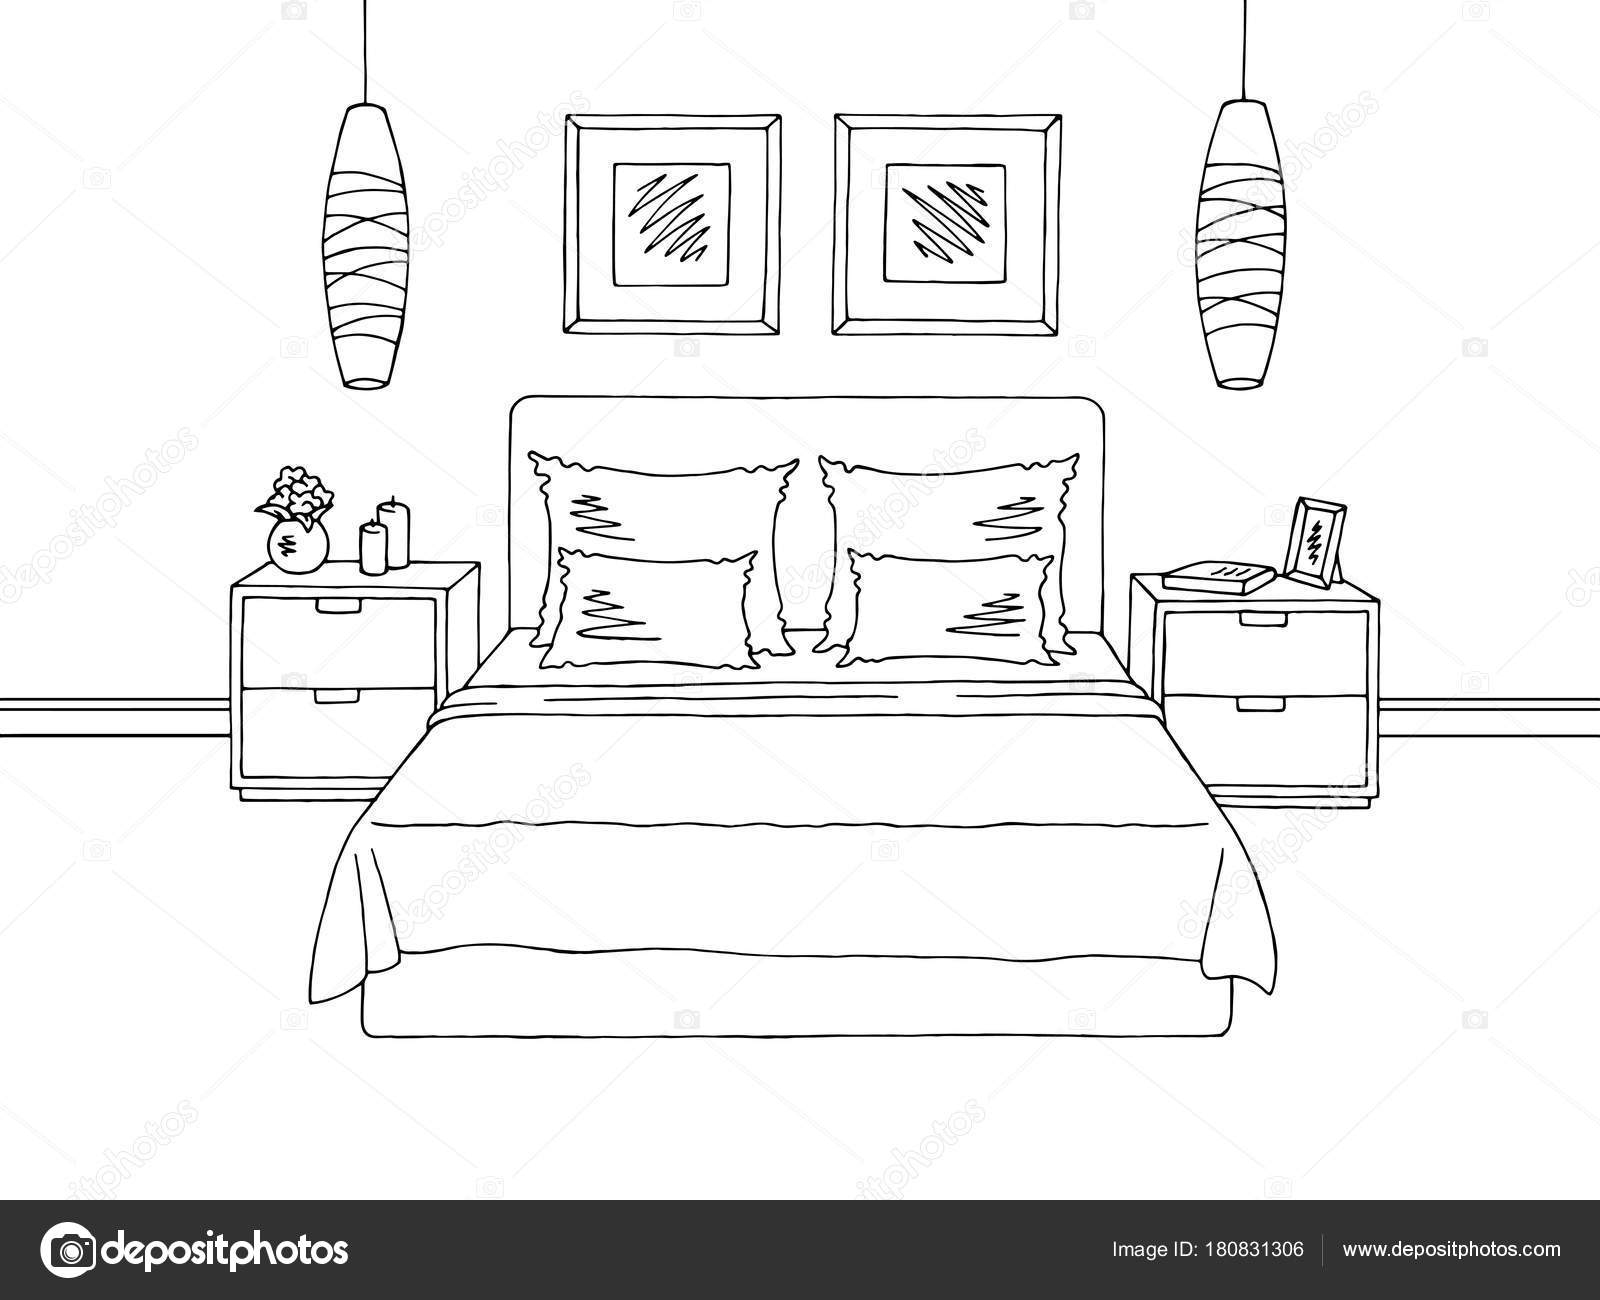 sex in bed black and white picture animated